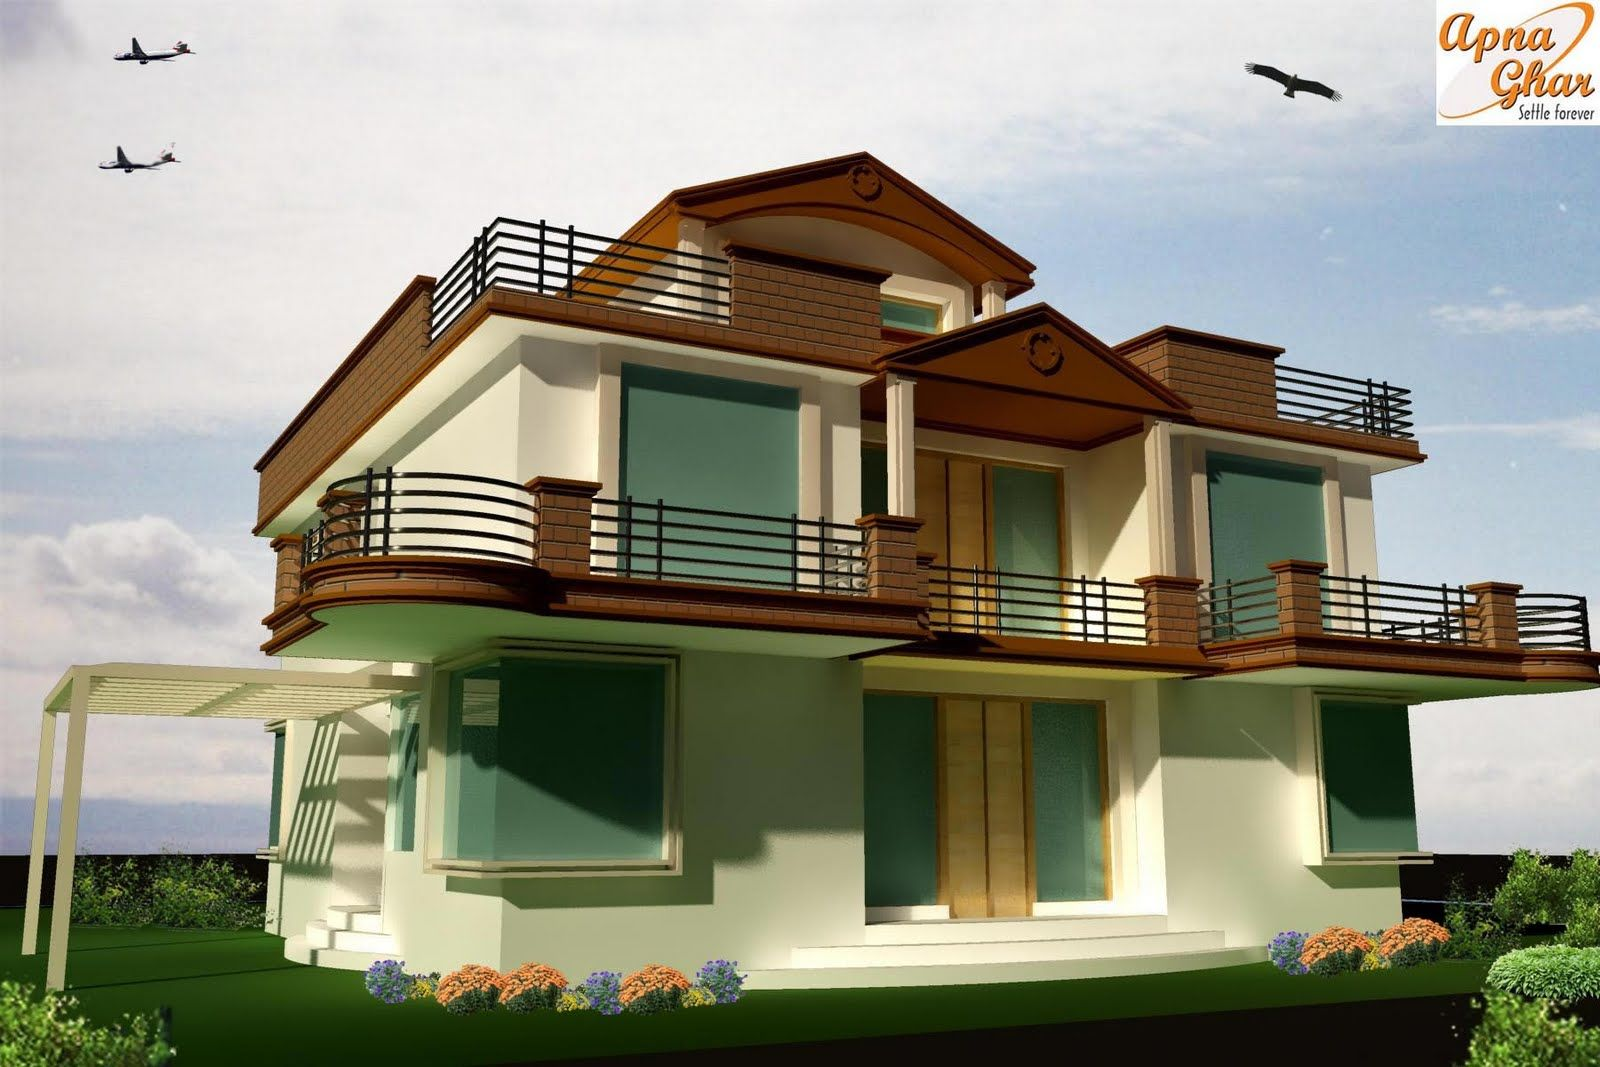 Architectural designs modern architectural house plans for Architecture design for home plans